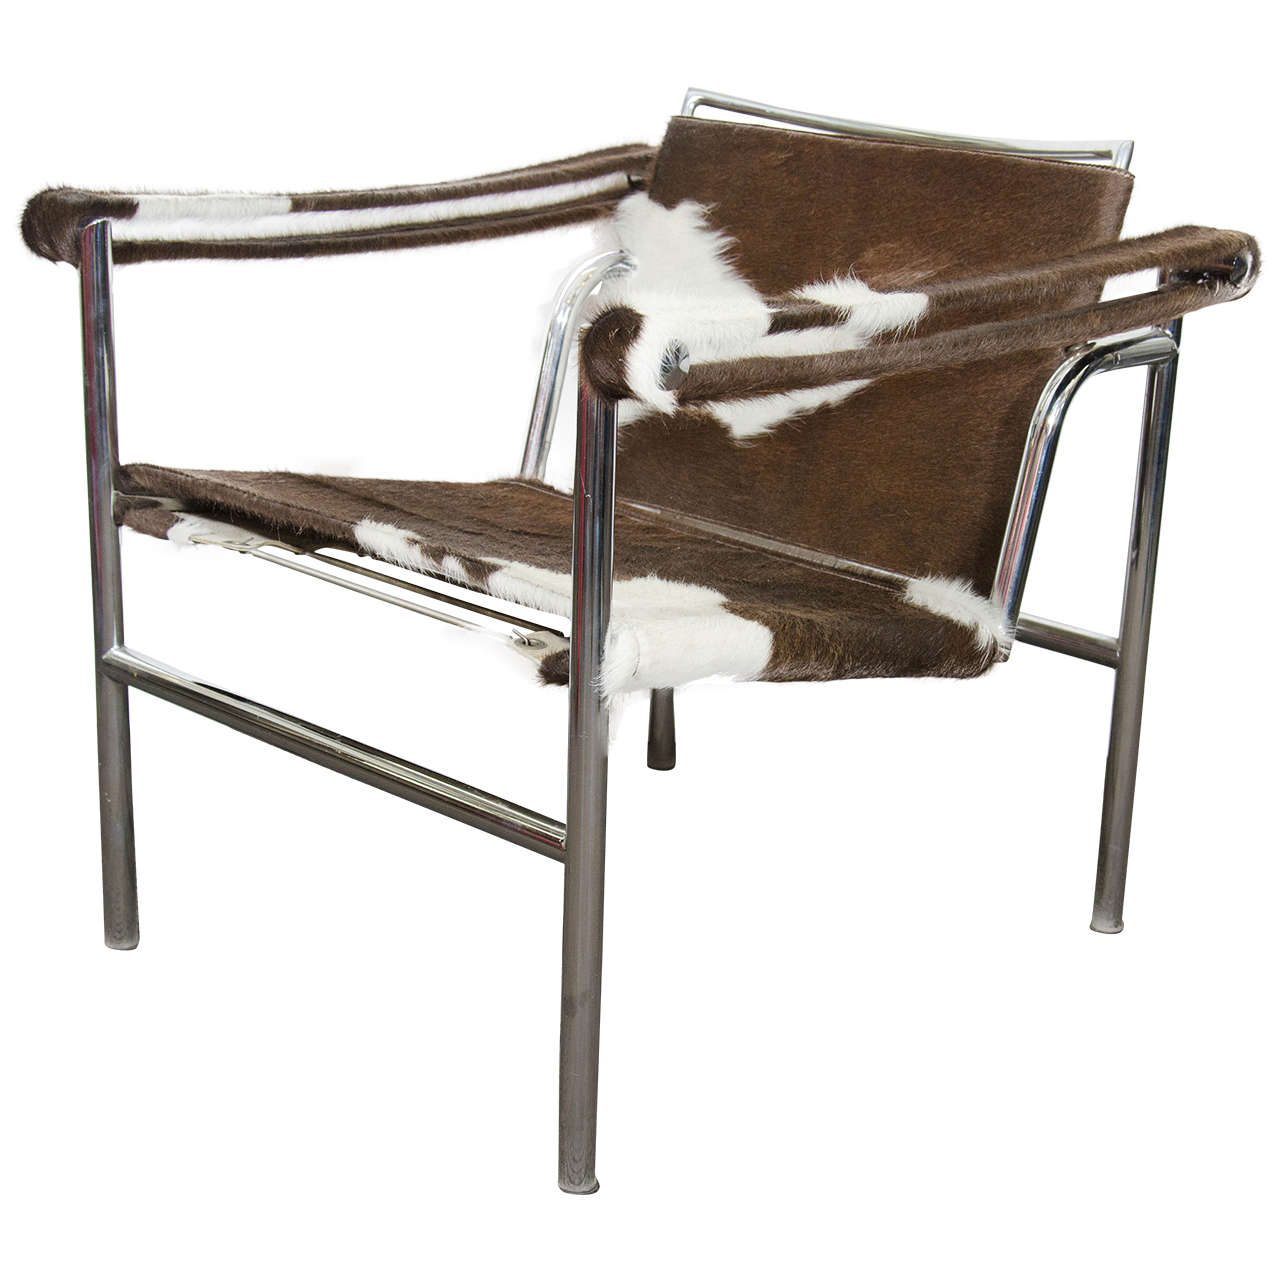 Midcentury Le Corbusier Sling Chair Newly Reupholstered In Hide For Sale